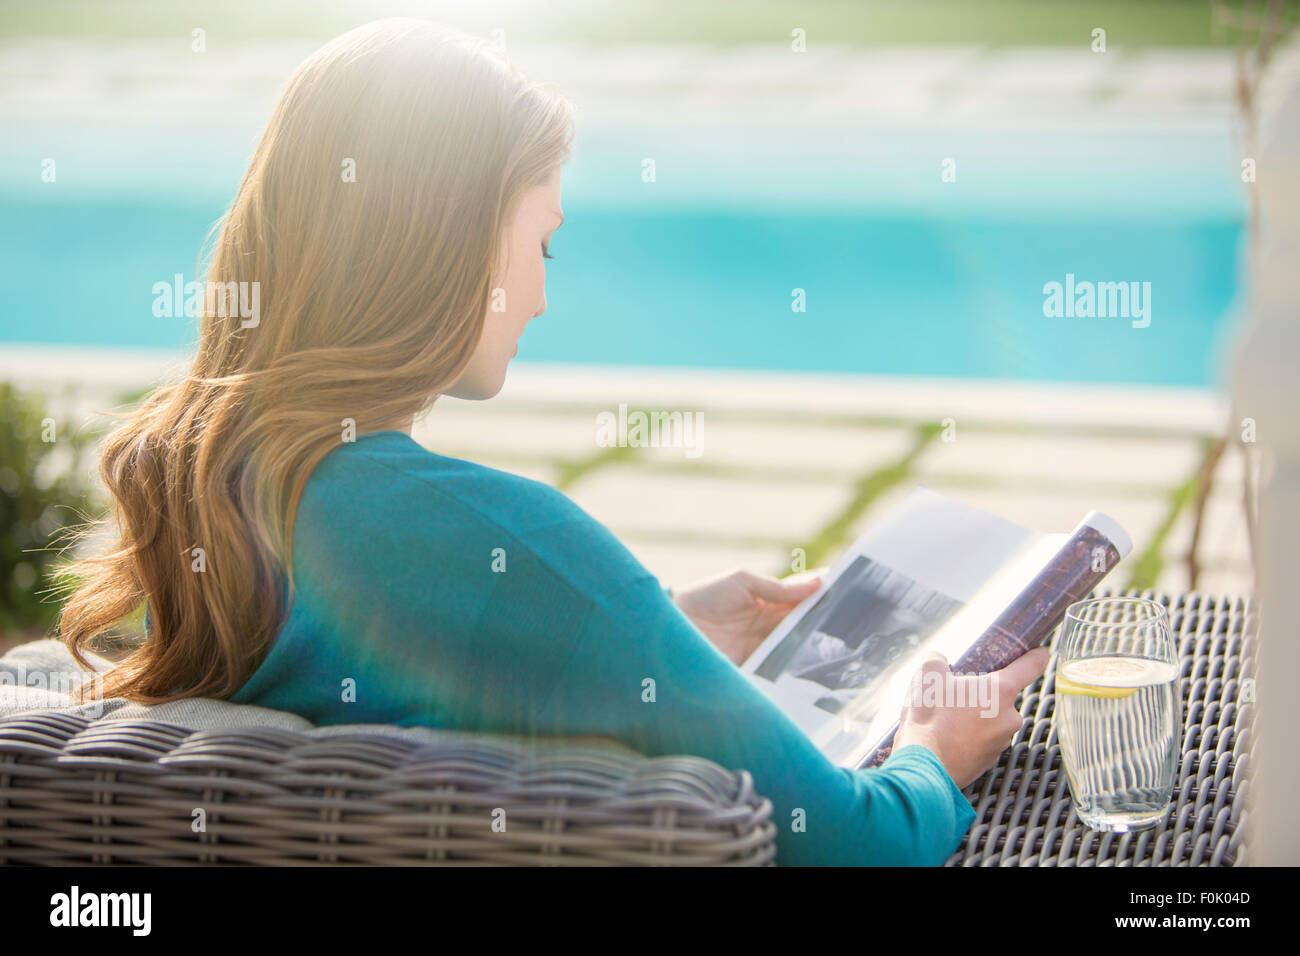 Brunette woman reading magazine at luxury poolside - Stock Image